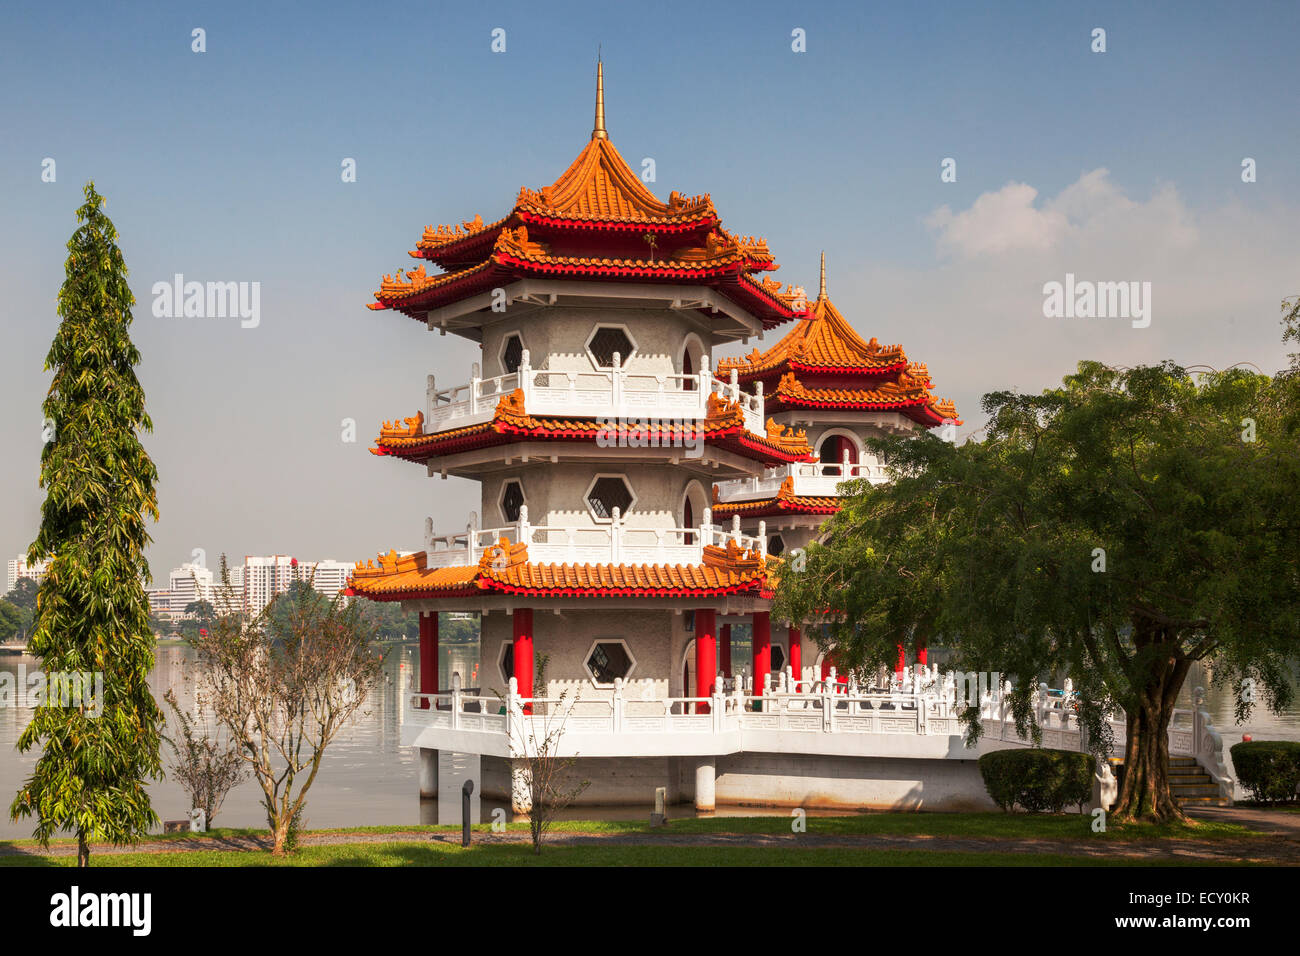 The Twin Pagodas on Jurong Lake, in the Chinese Garden, Singapore. - Stock Image